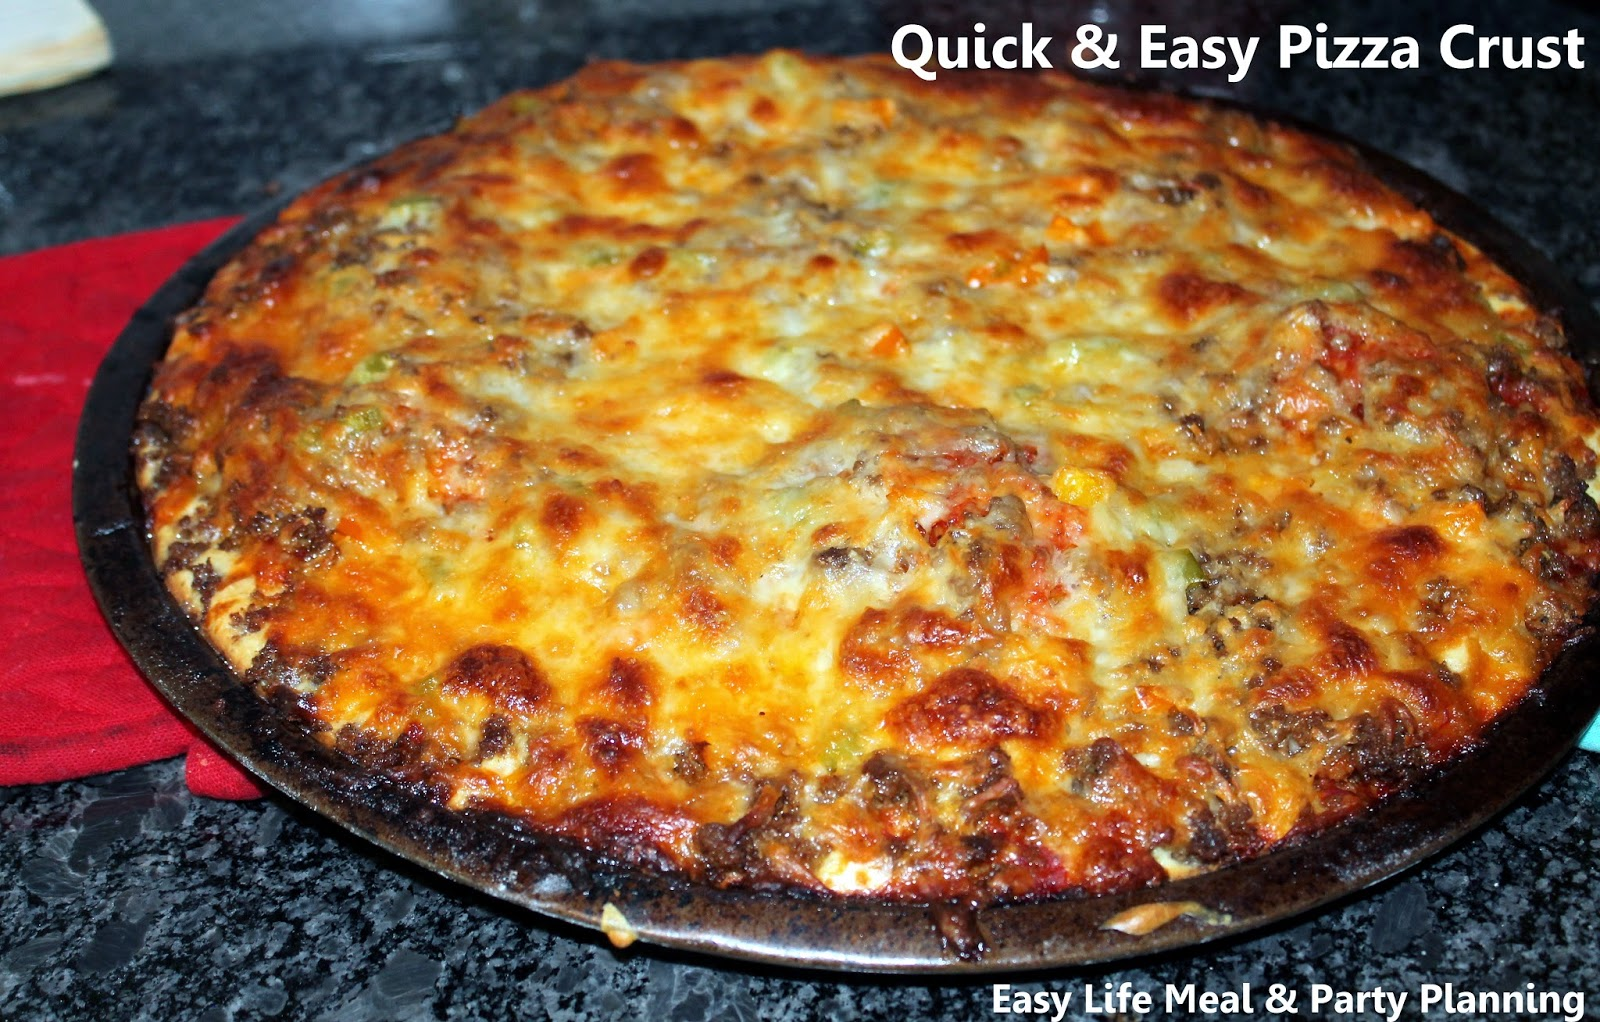 Easy Life Meal & Party Planning: Quick & Easy Pizza Crust - 3 minutes to prepare - no rising, no kneading, and no rolling & amazing!